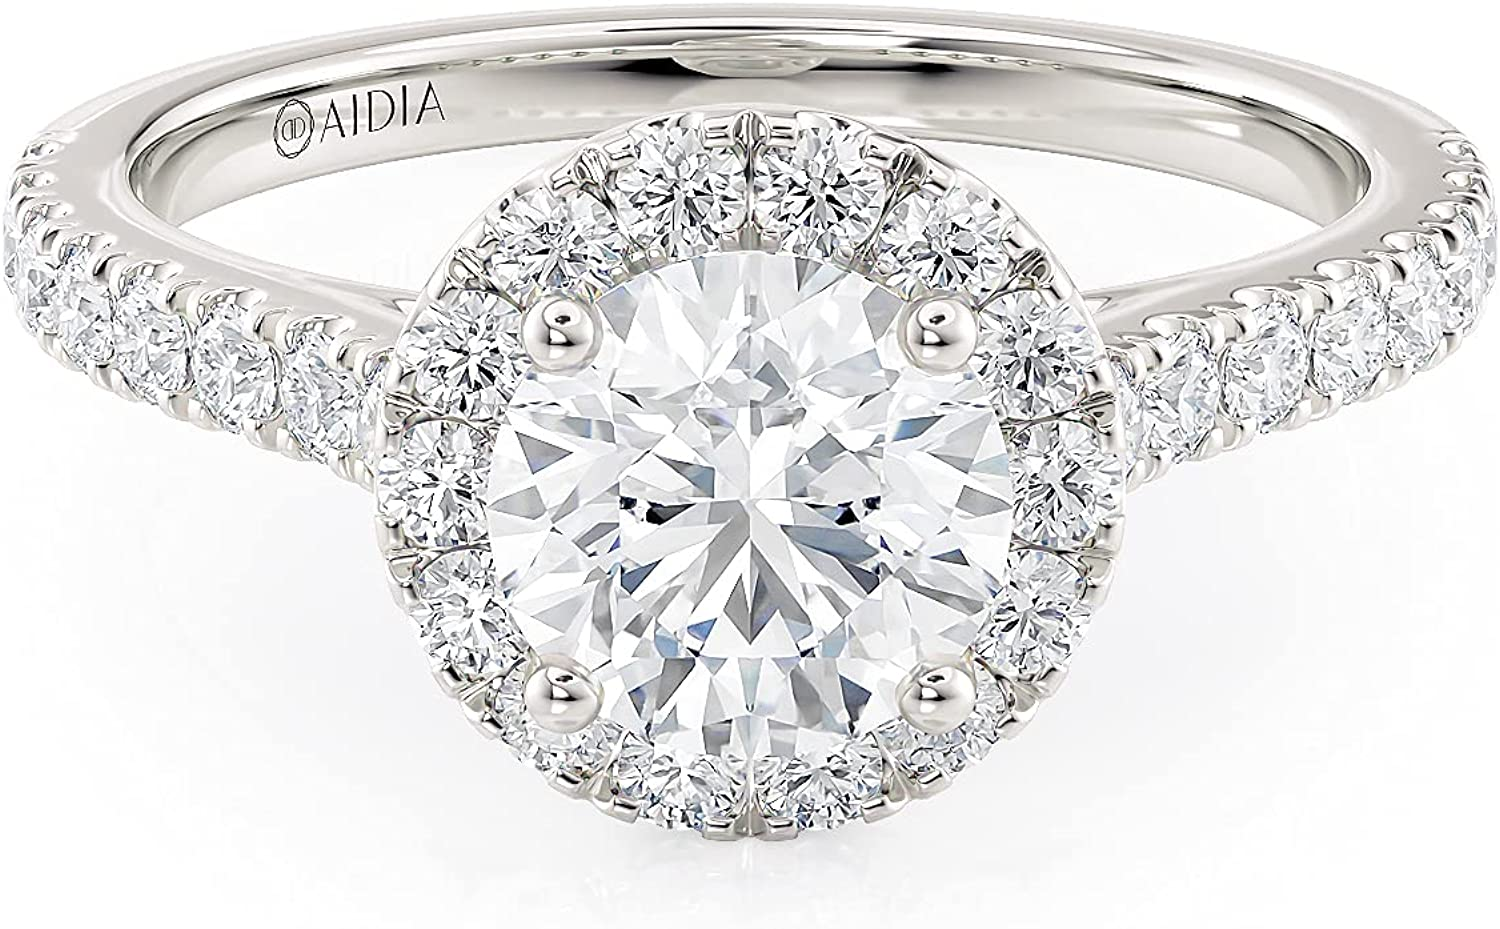 3 4 Carat Lab Grown Diamond Classic Chicago Mall Engagement i Outlet SALE Round Ring Halo